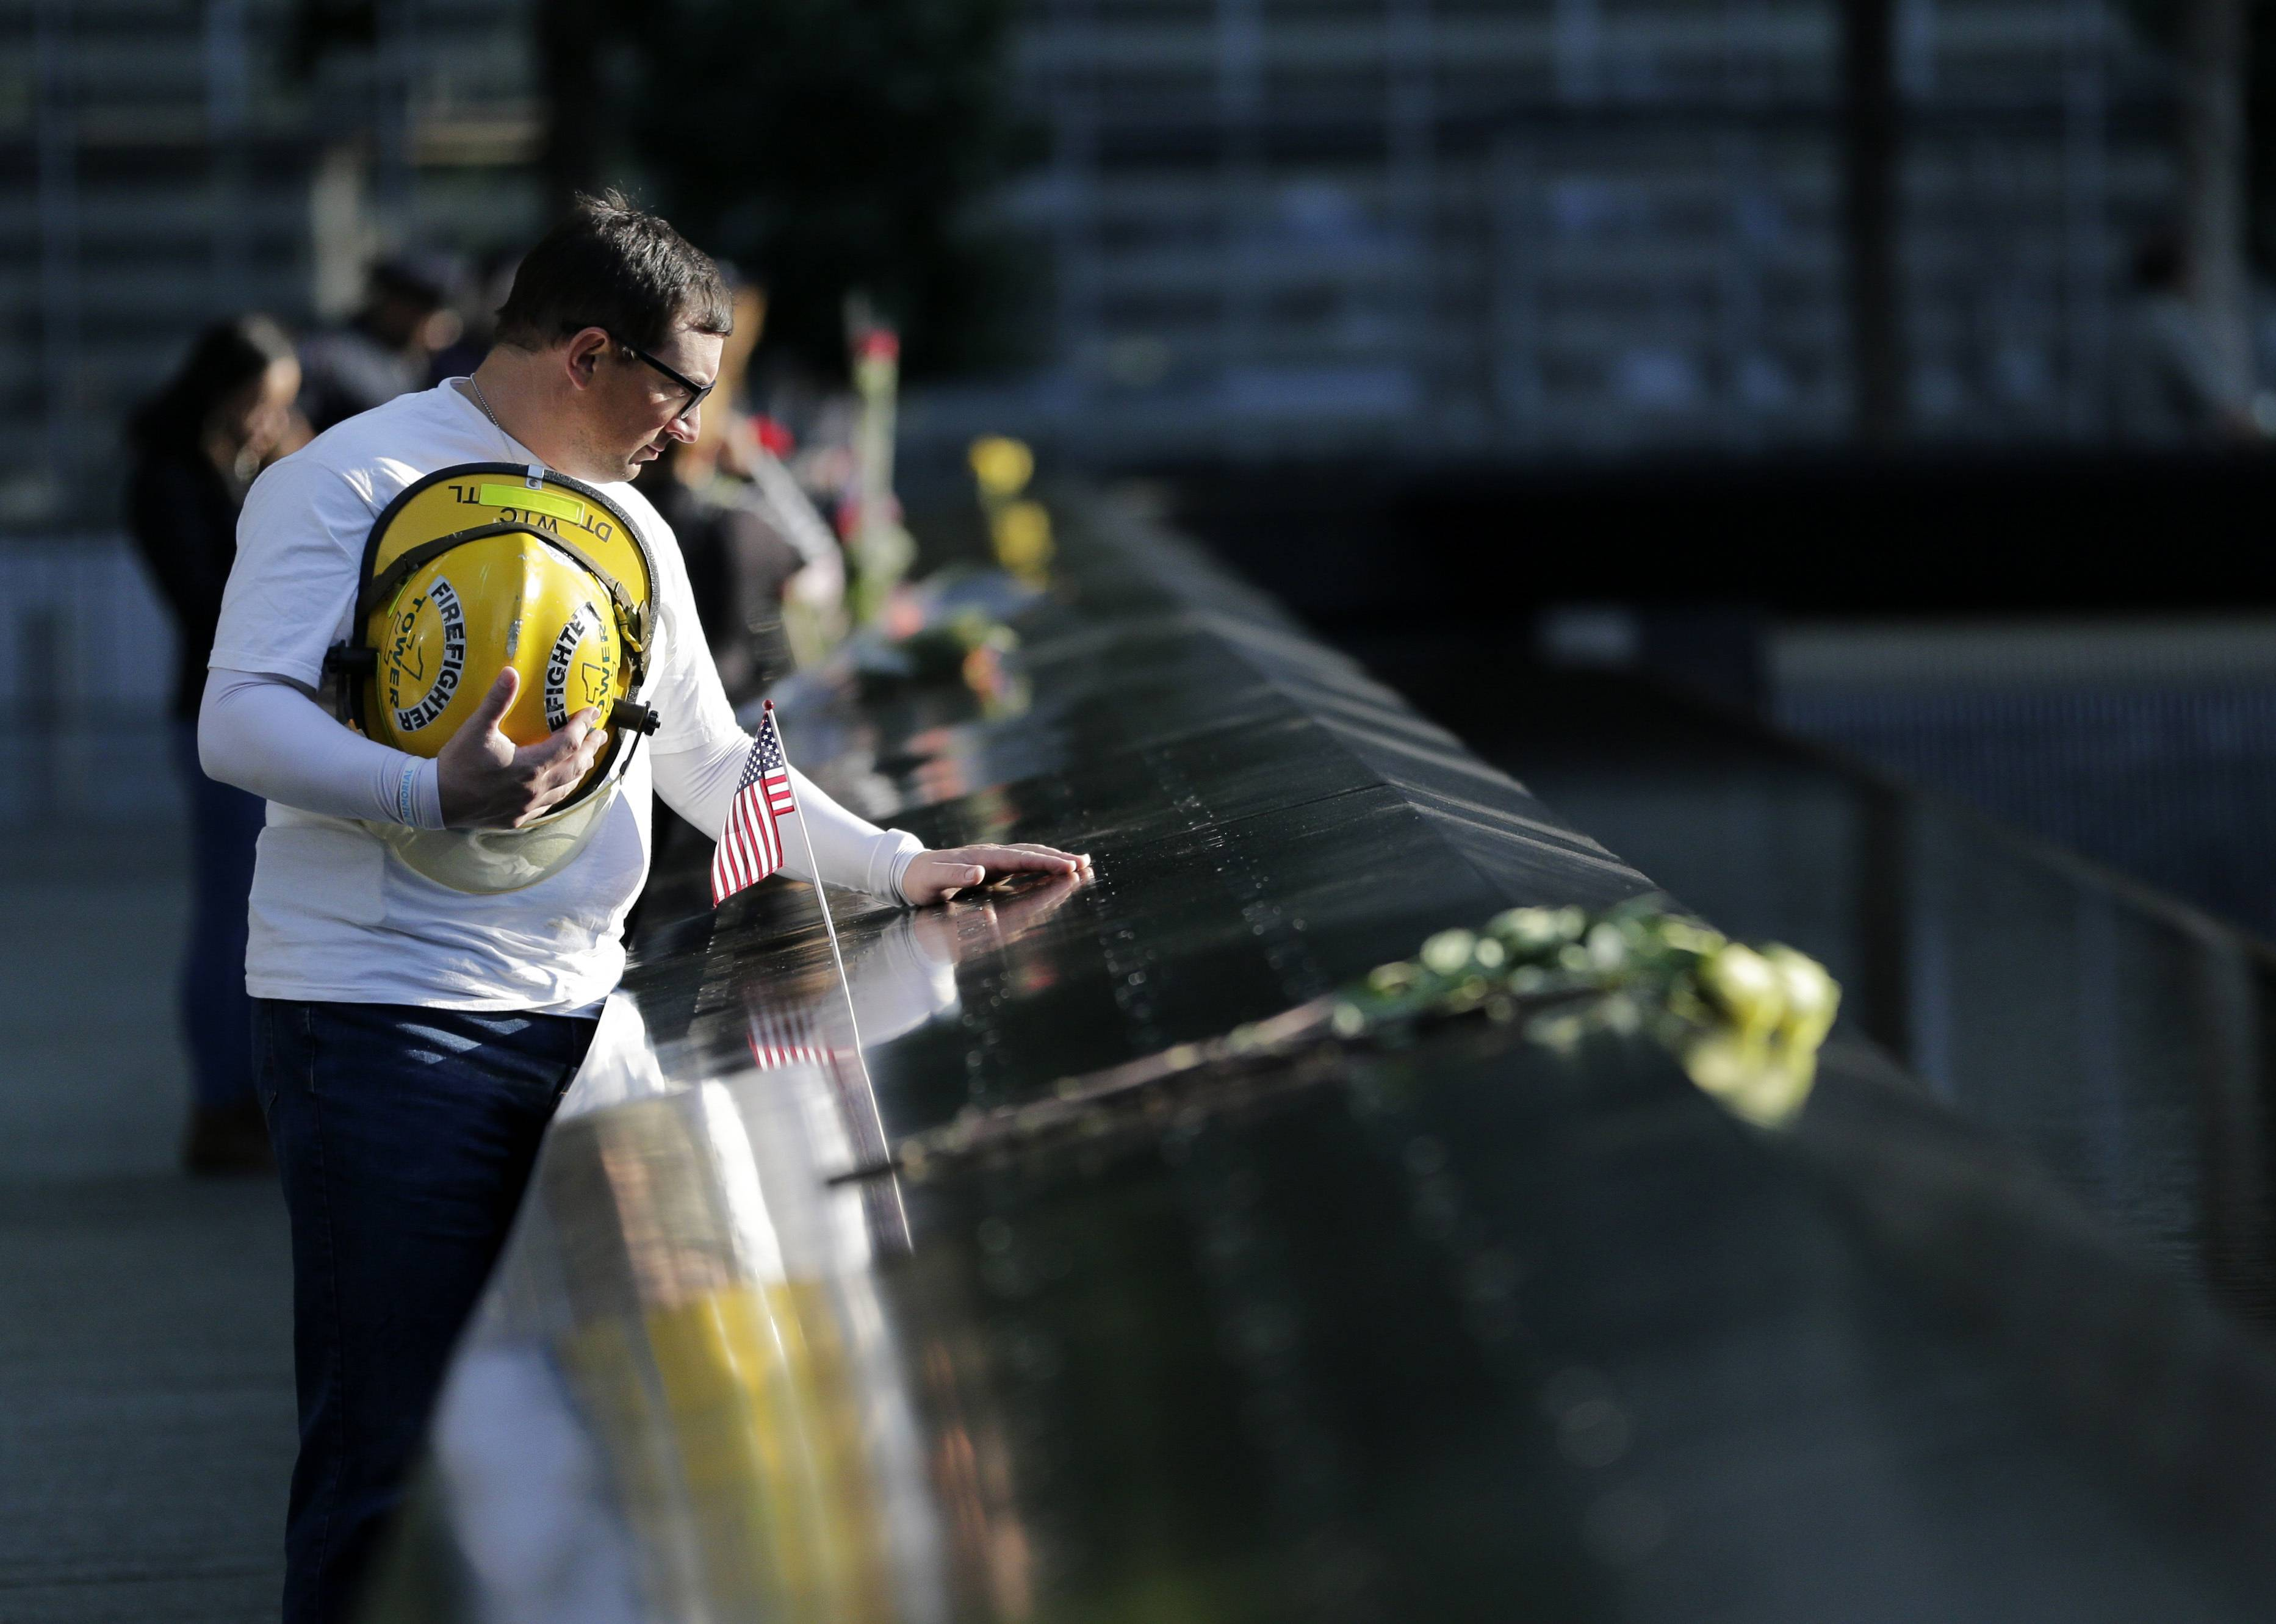 Images: 16th anniversary of the Sept. 11 attacks